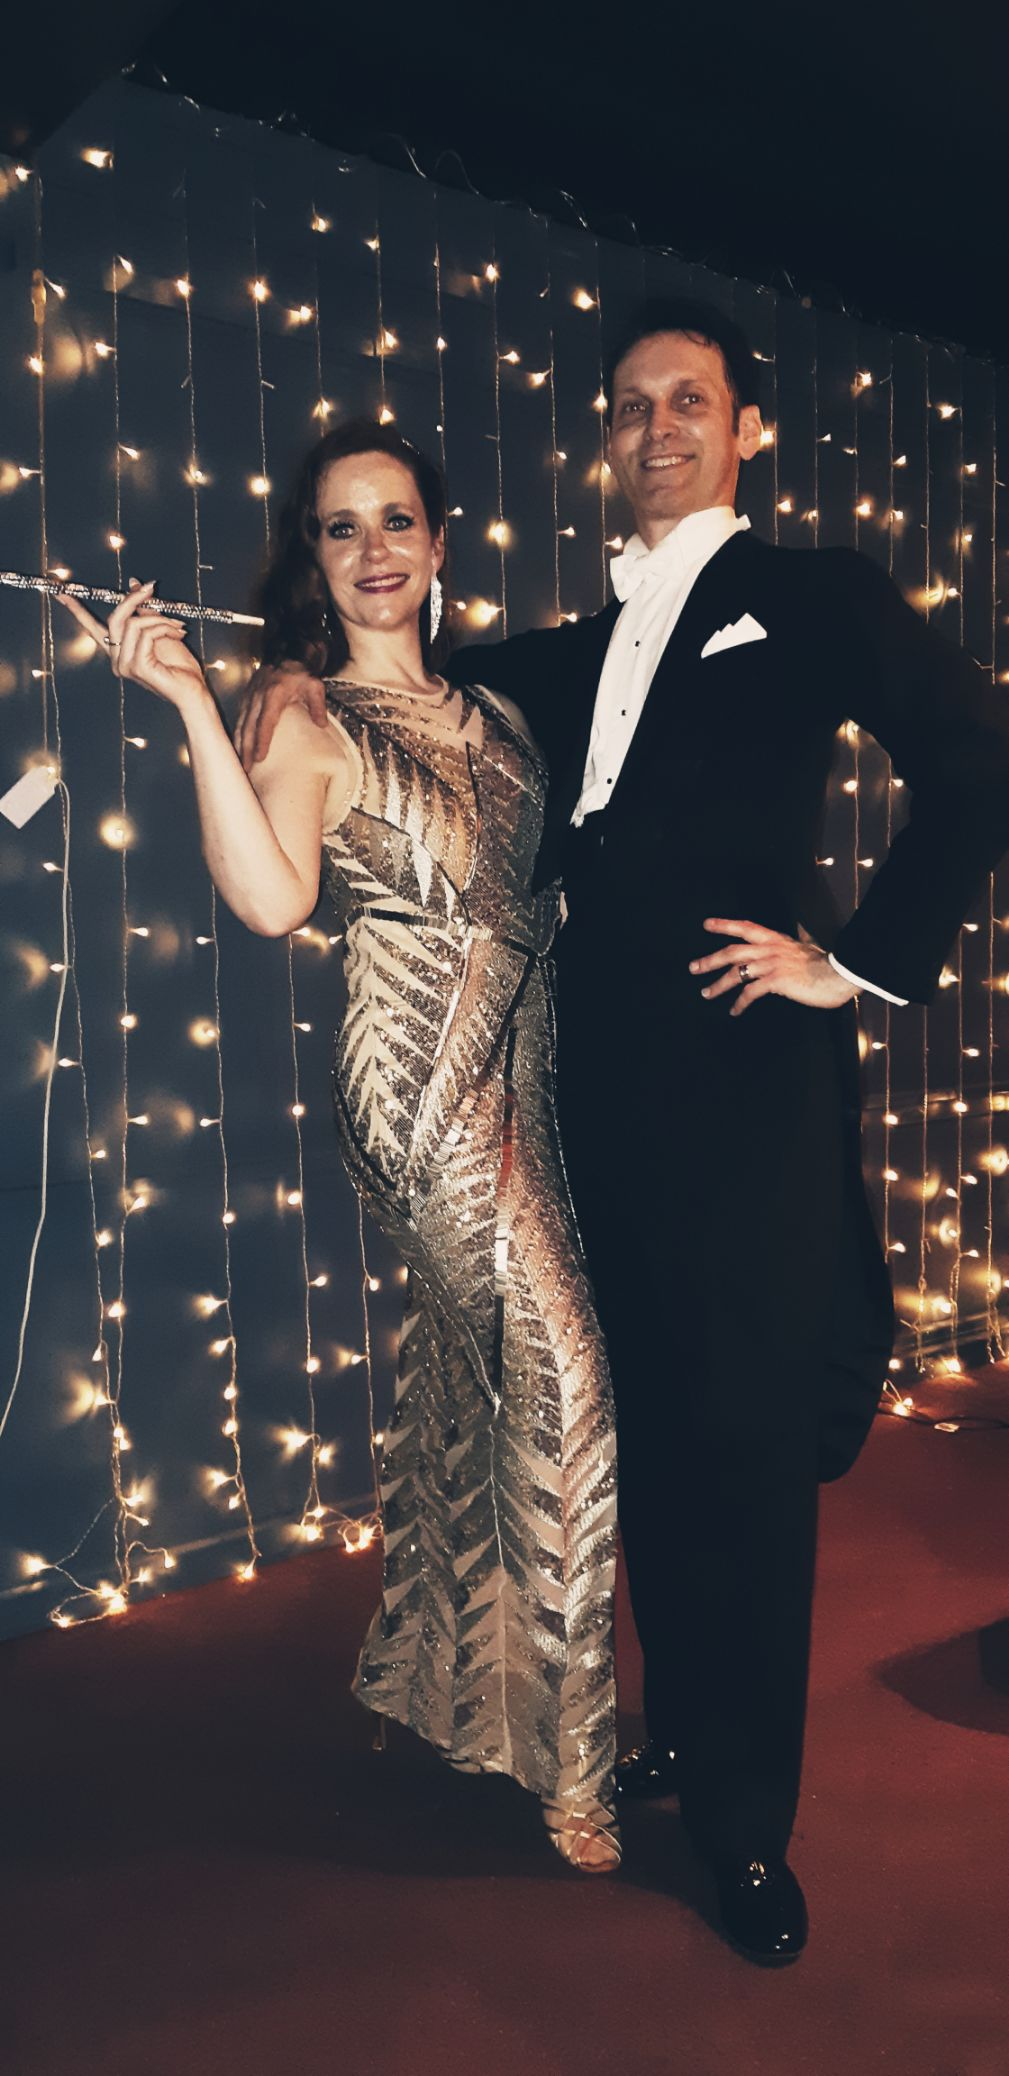 GottaDance Holiday March 2019. Out Great Gatsby themed evening in the wonderful Art Deco interior of the Trouville Hotel, Sandown.